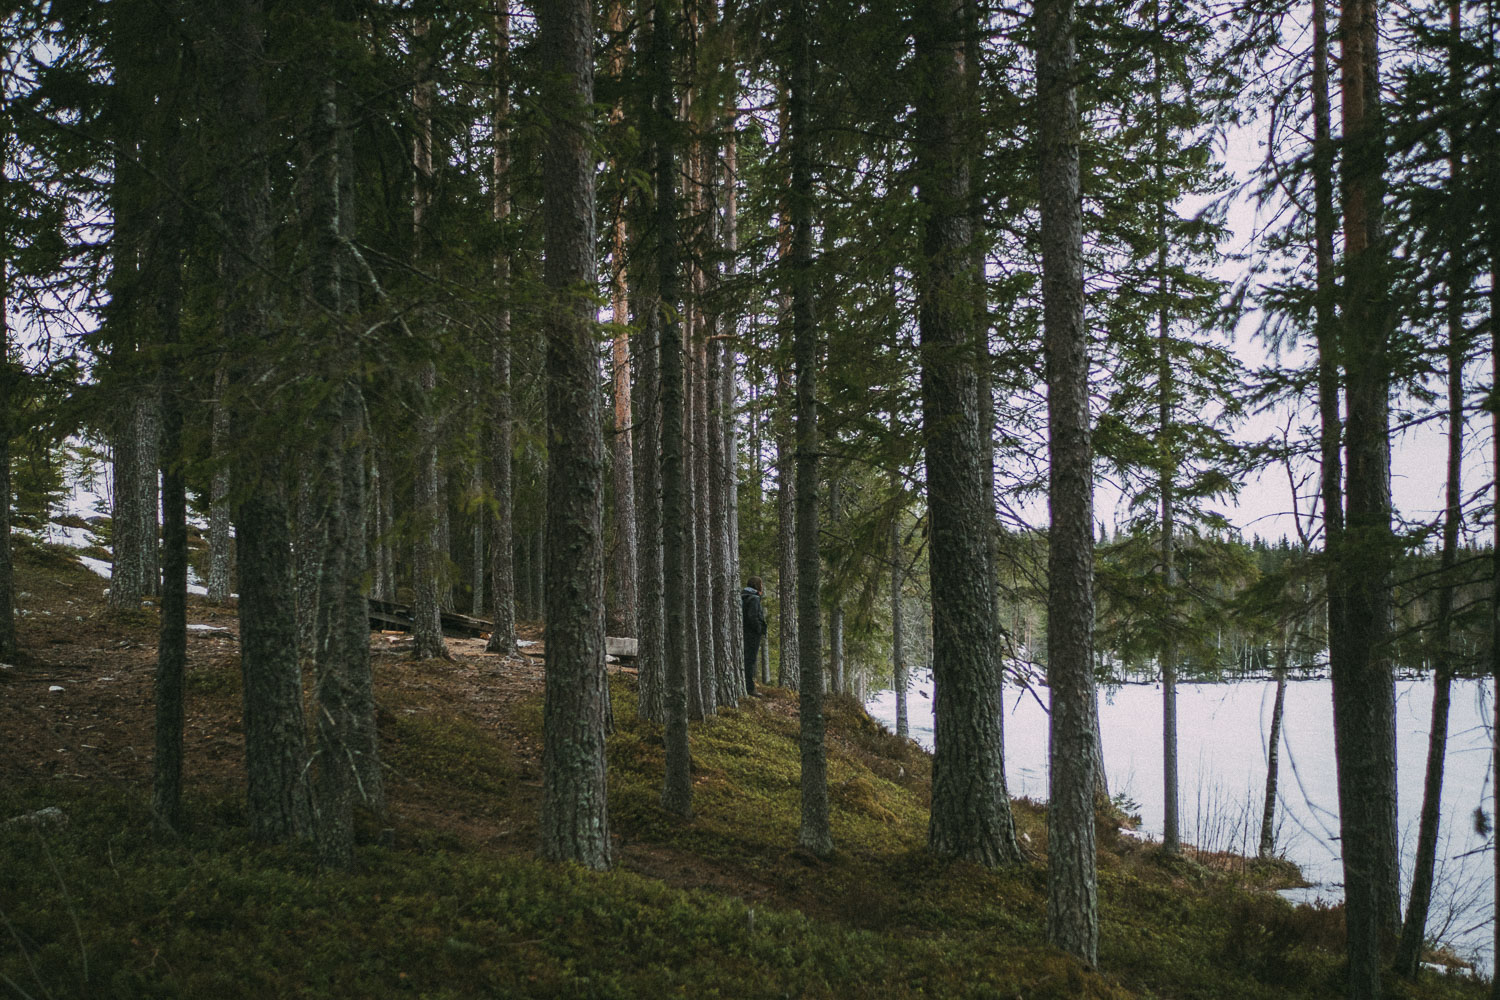 Woman by a lake in a forest